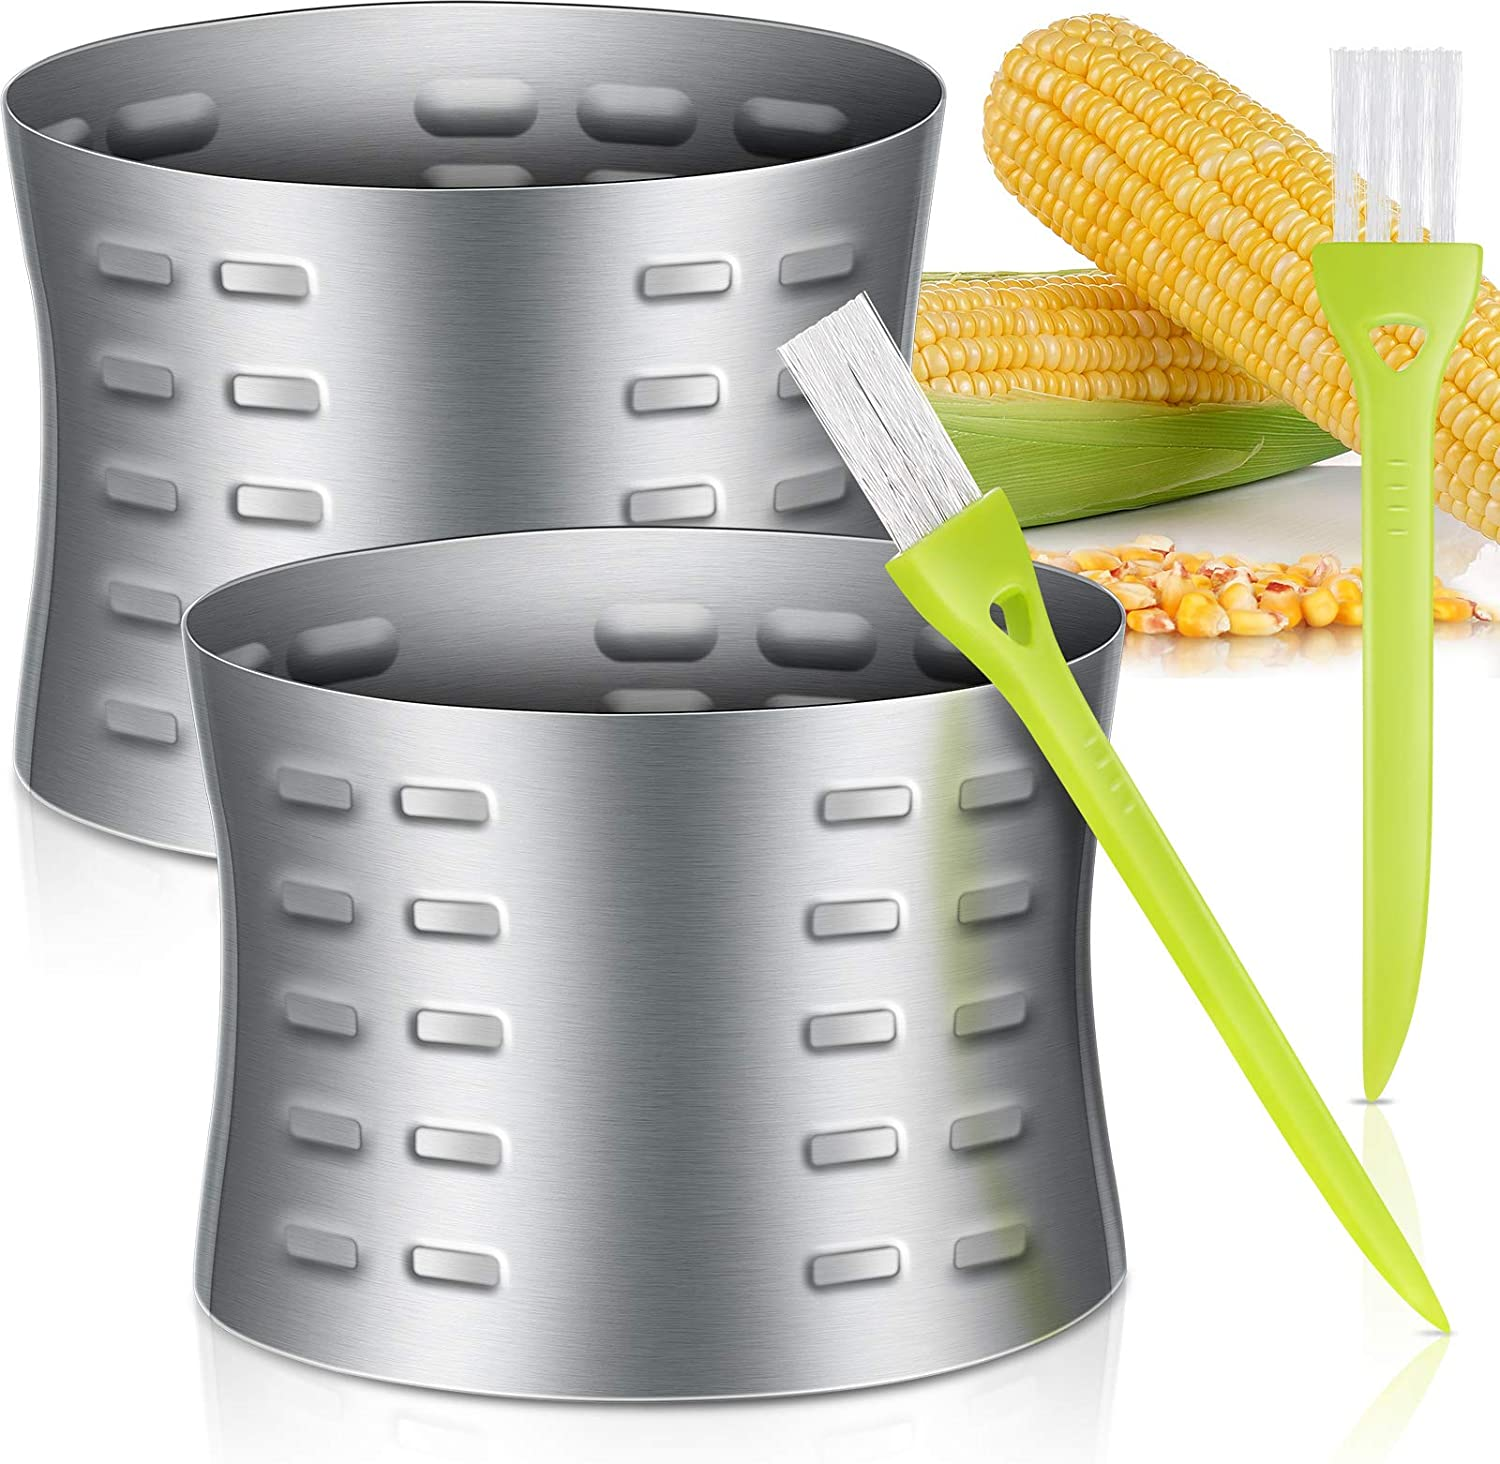 2 Pieces Corn Stripper Cutter Stainless Steel Corn Thresher Slicer Corn Stripping Tool with 2 Pieces Cleaning Brushes for Home Kitchen Use